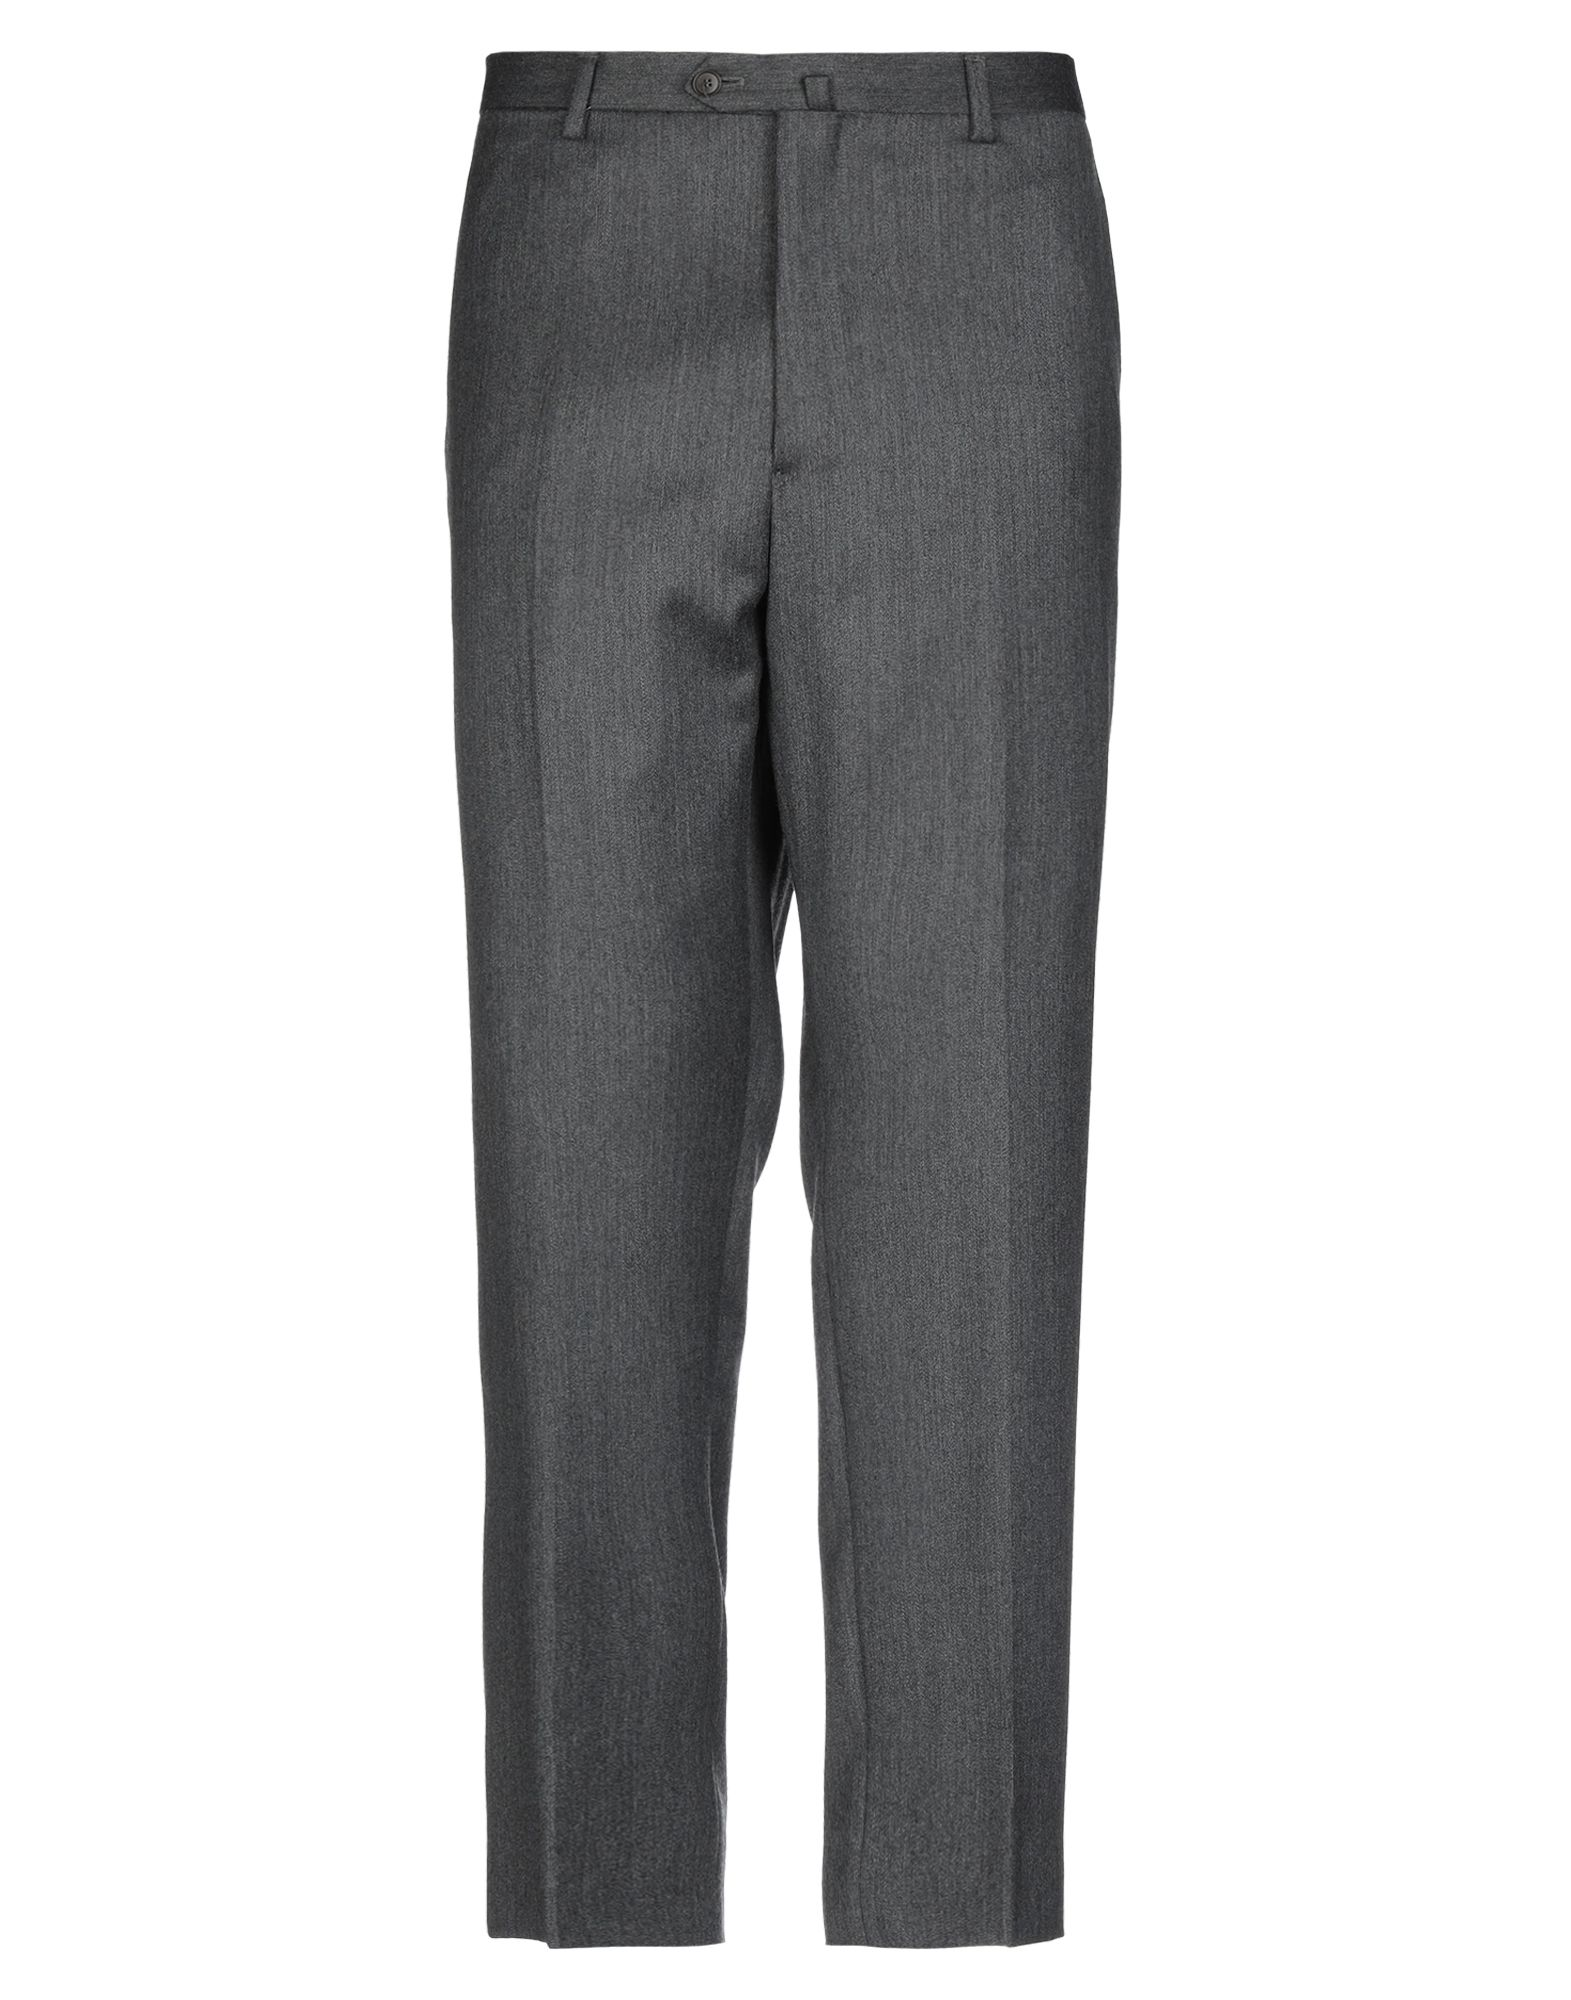 DALTON & FORSYTHE Casual pants. flannel, solid color, no appliqués, mid rise, regular fit, tapered leg, button, zip, multipockets. 100% Virgin Wool